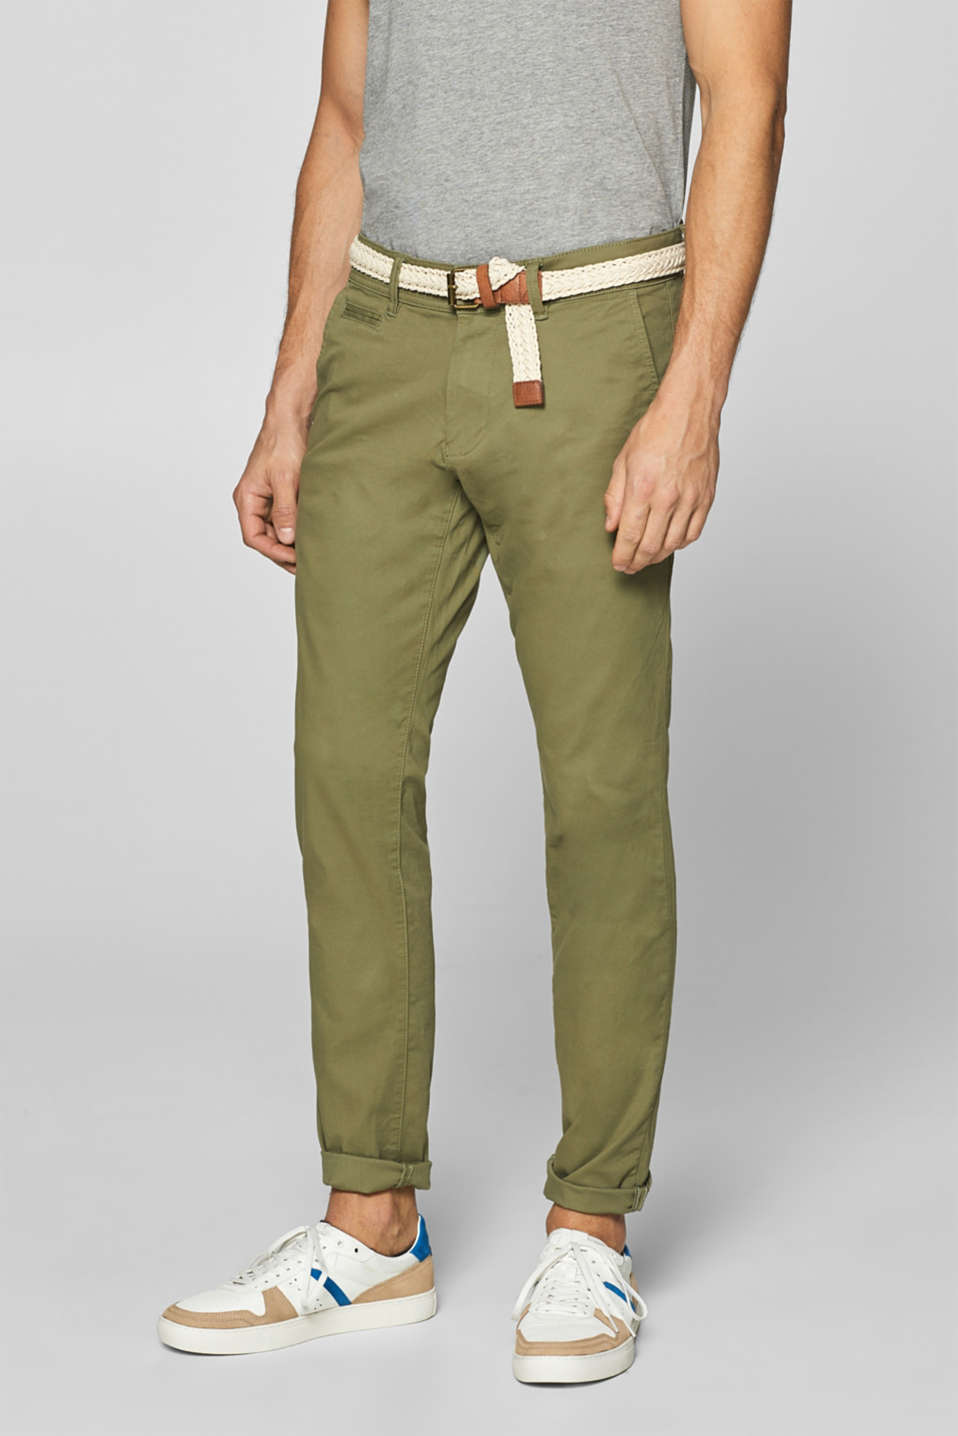 Esprit - Stretch cotton chinos with a belt